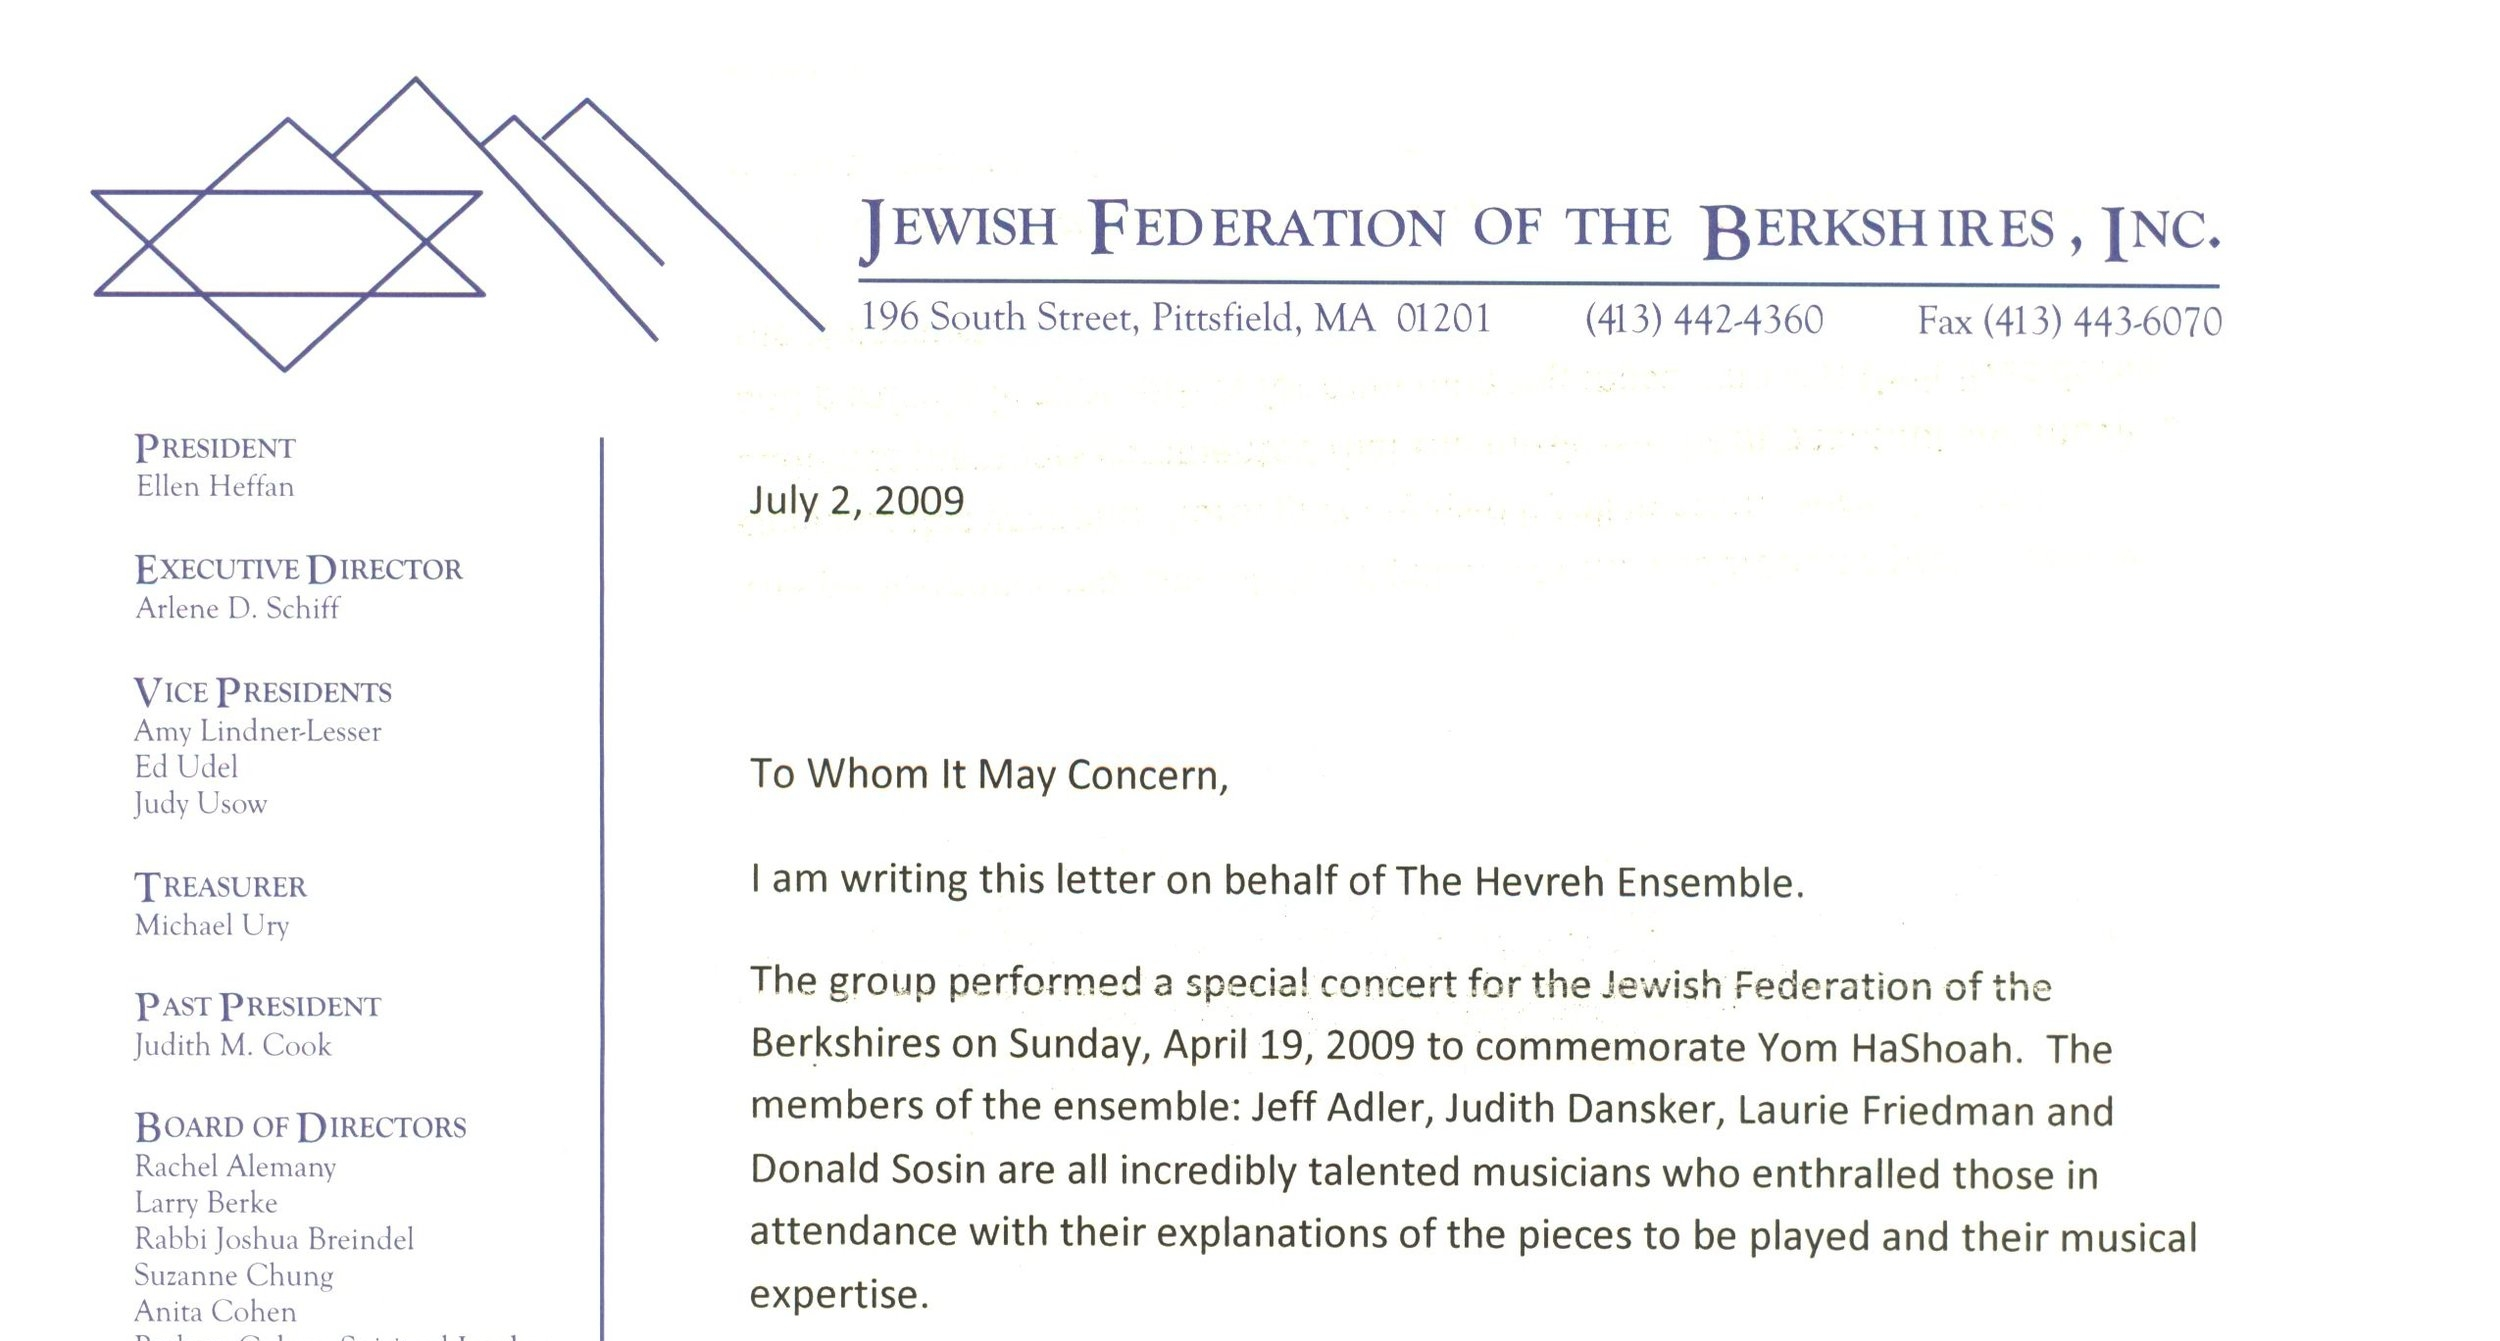 Jewish Federation of the Berkshires - Letter of Support, July 2009